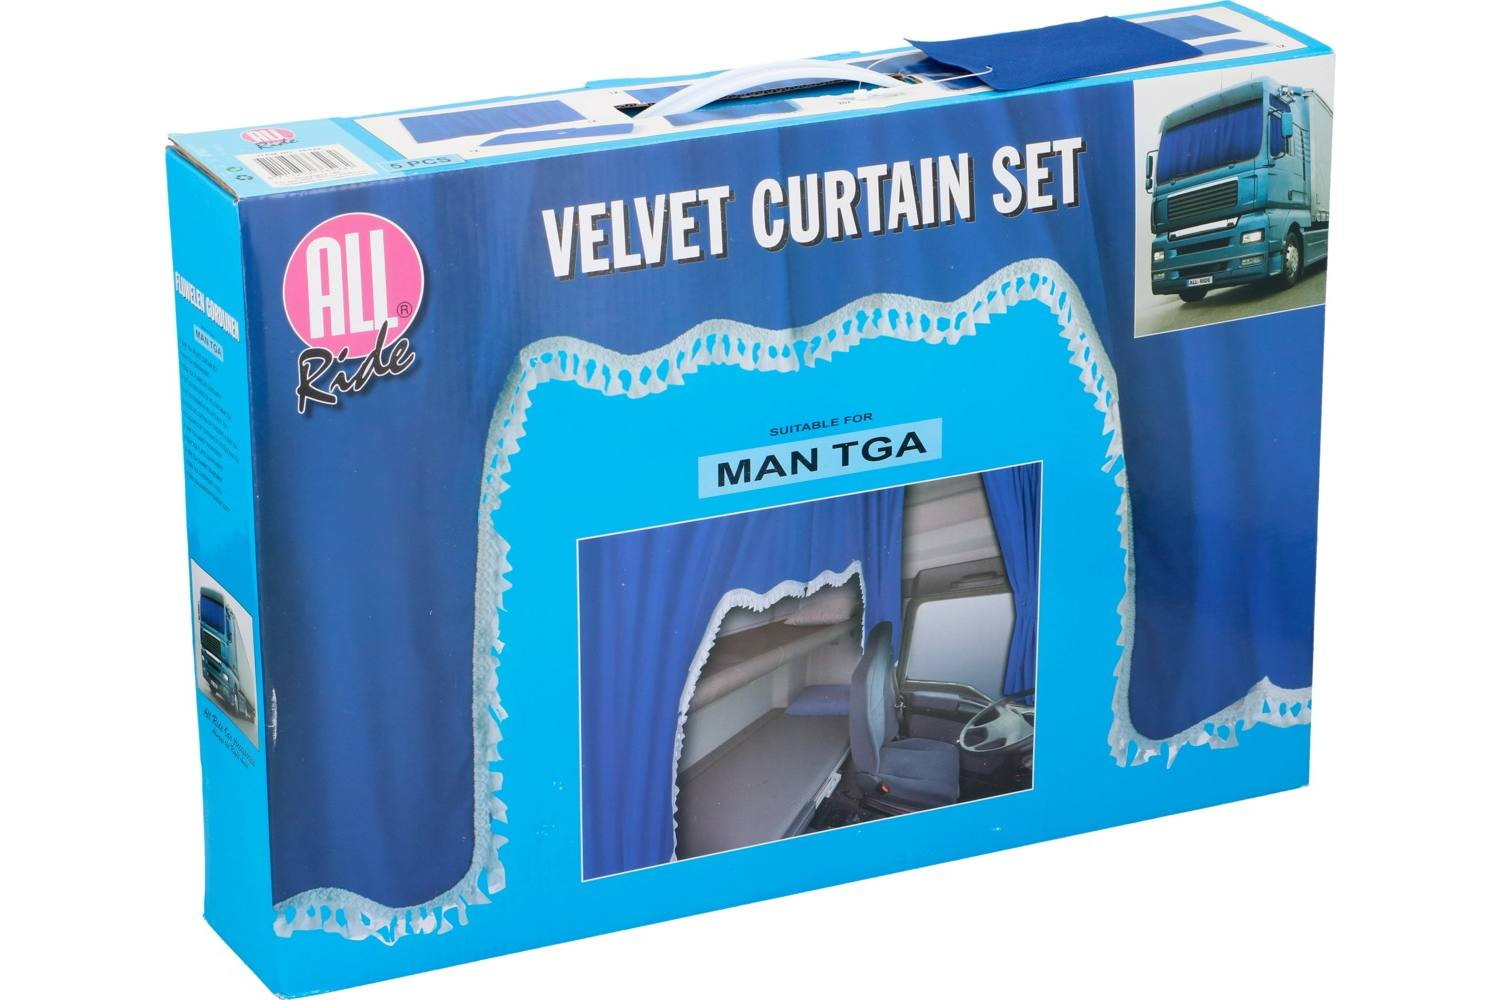 Curtain set, AllRide, MAN TGA 1